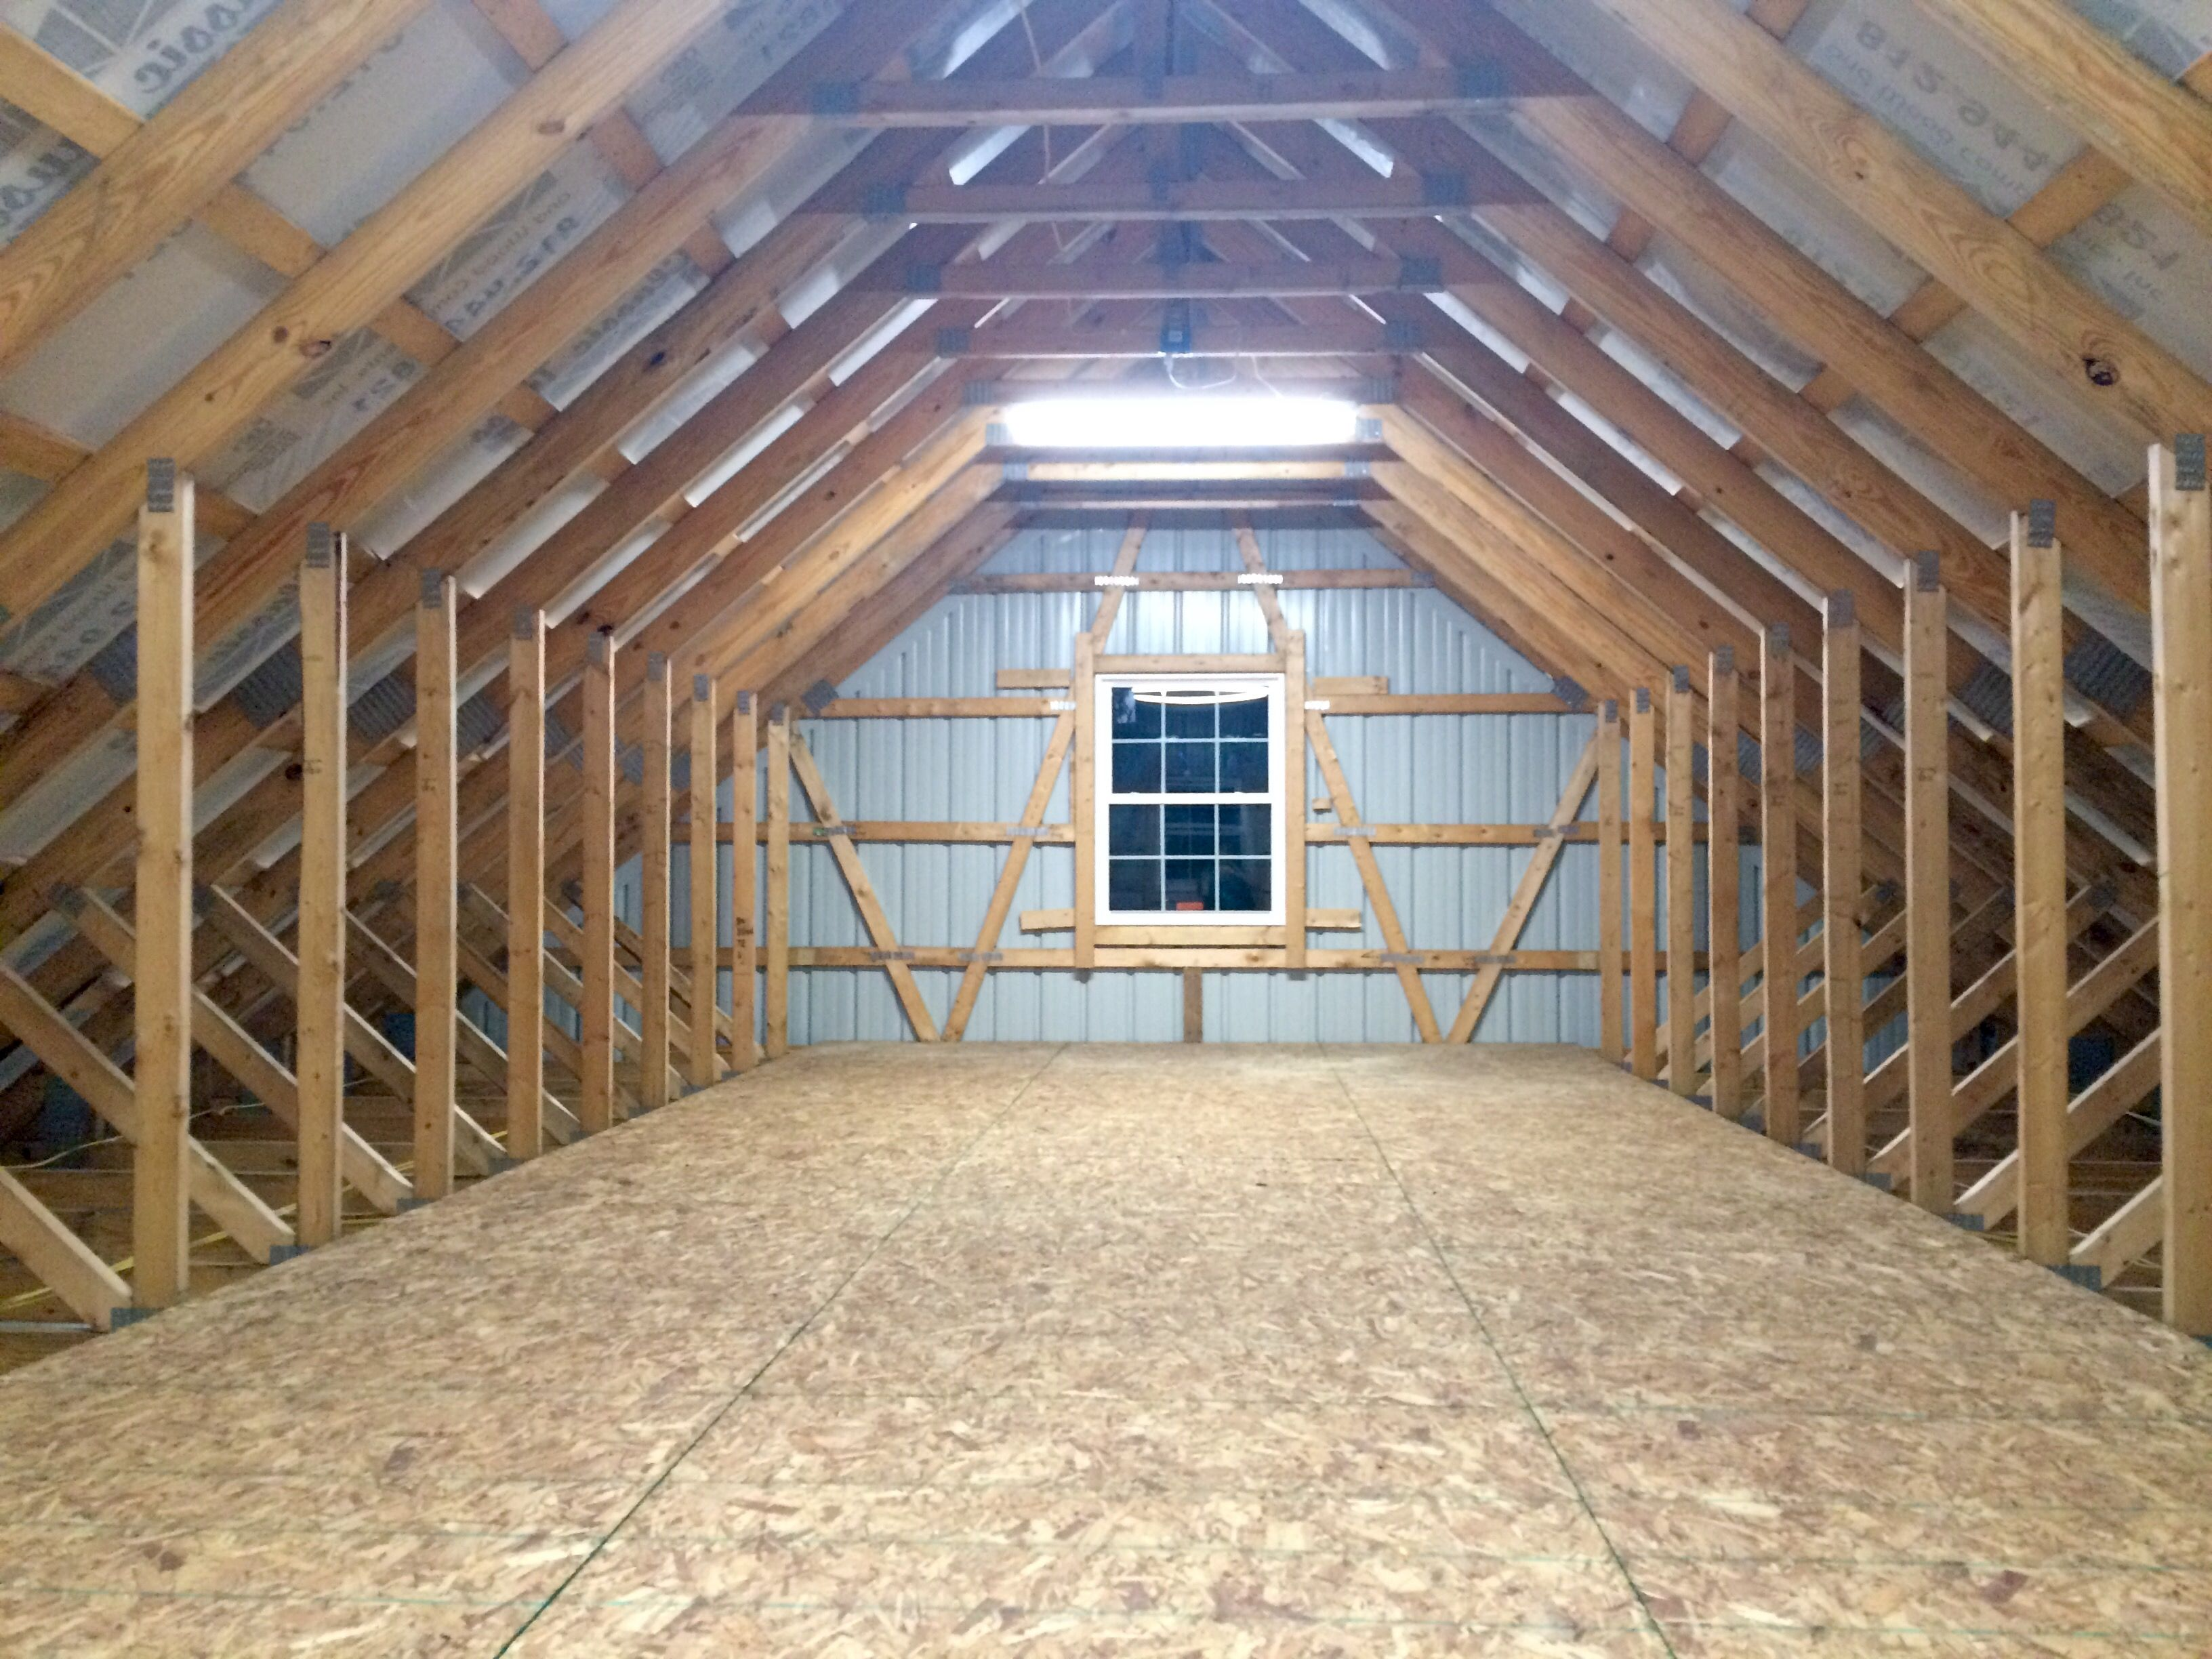 Newly Constructed Pole Barn This Is The 32 X 12 X 9 Unfinished Attic Space Accomplished By Using Pre M Pole Barn Homes Barn House Plans Pole Barn House Plans